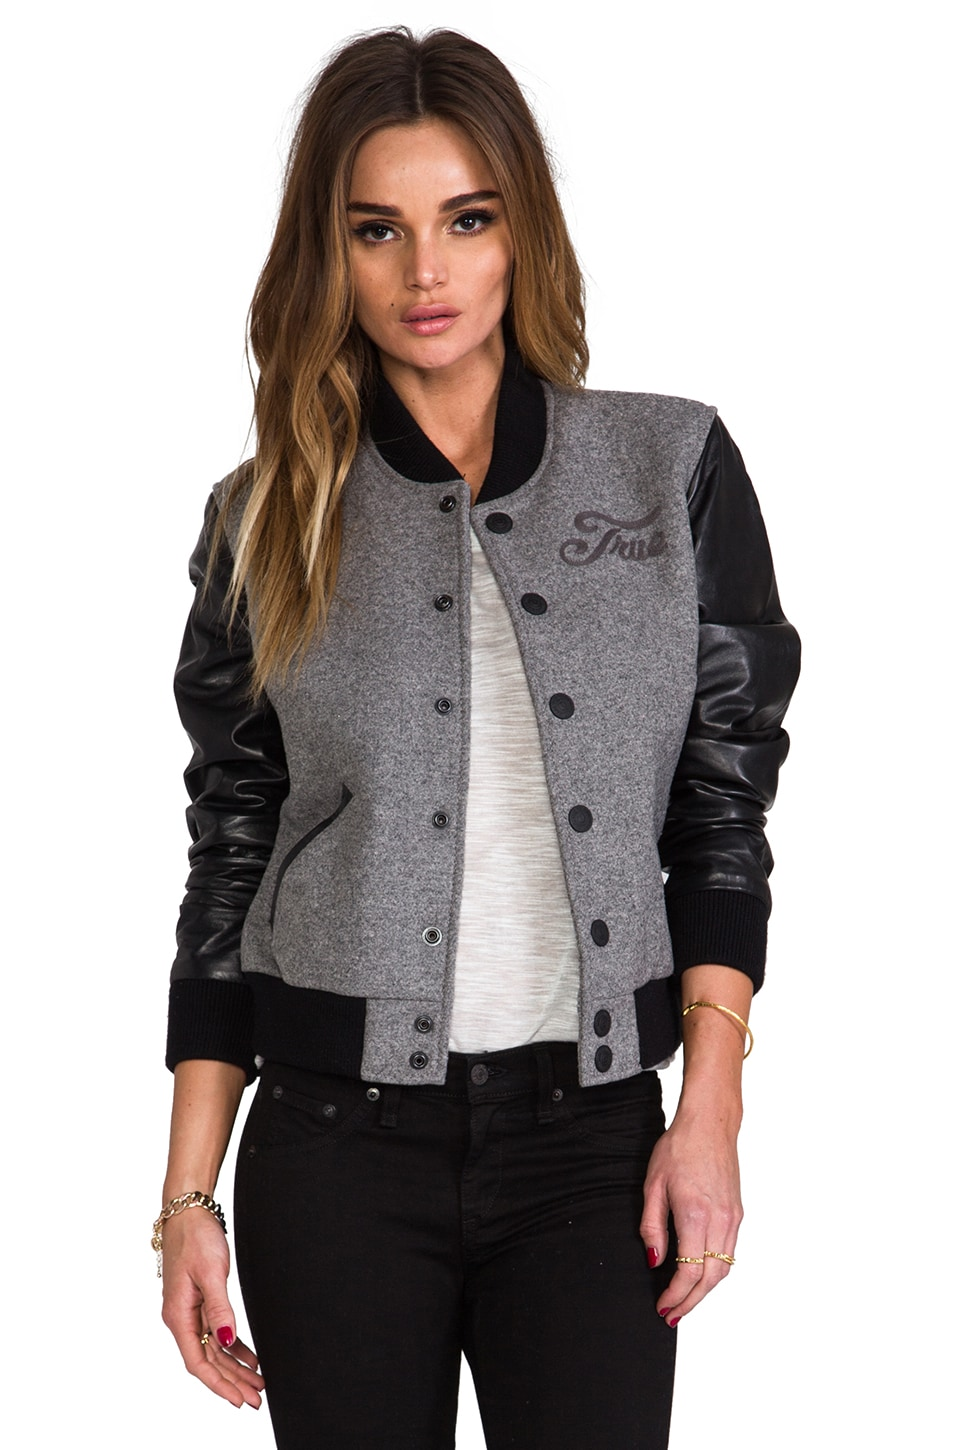 True Religion Richie Varsity Jacket in Heather Grey